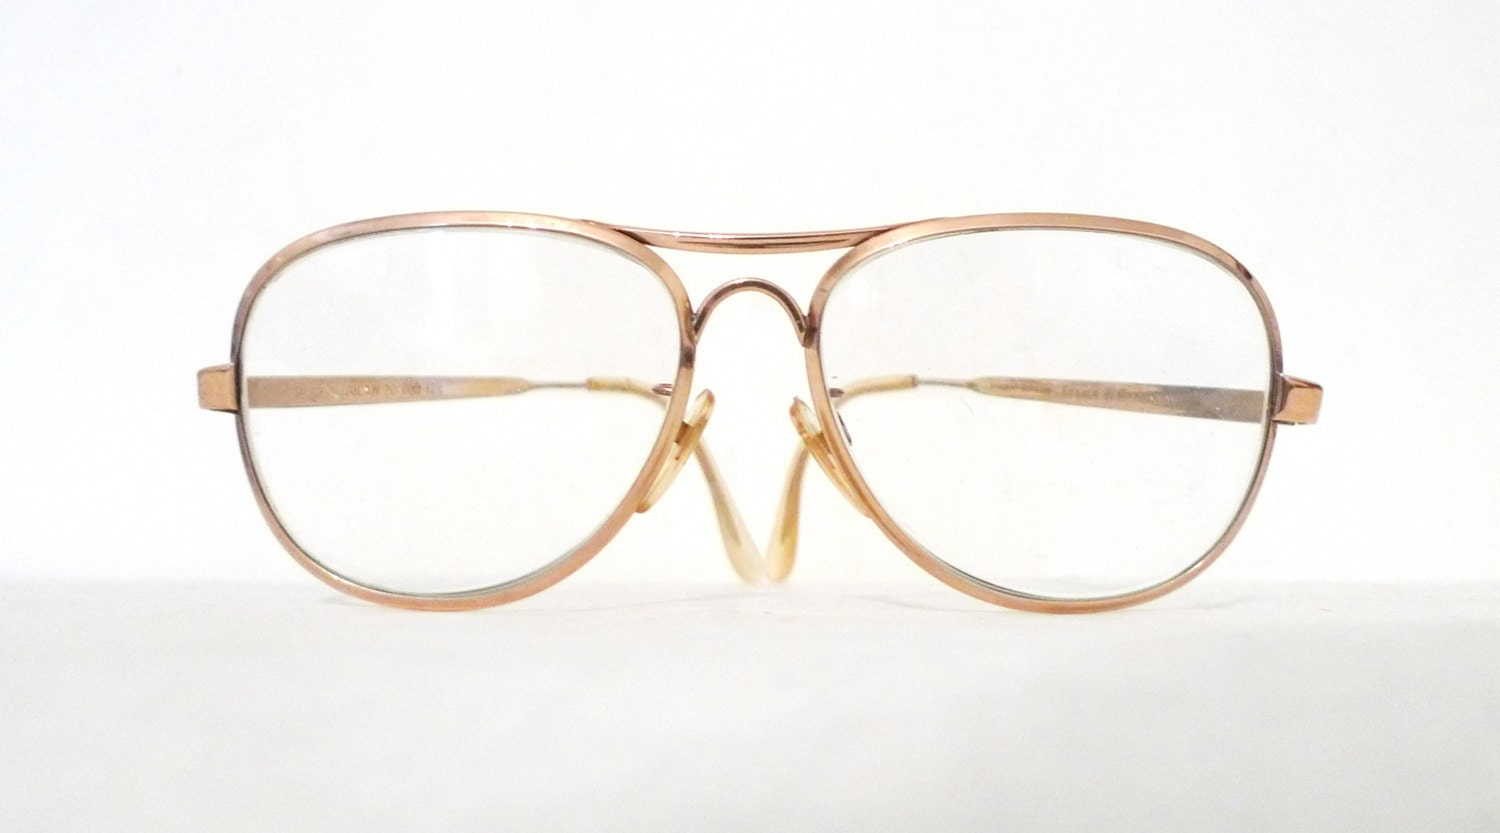 VTG 12K Gold Filled Aviators 60s 70s Gold Aviator Eyeglasses